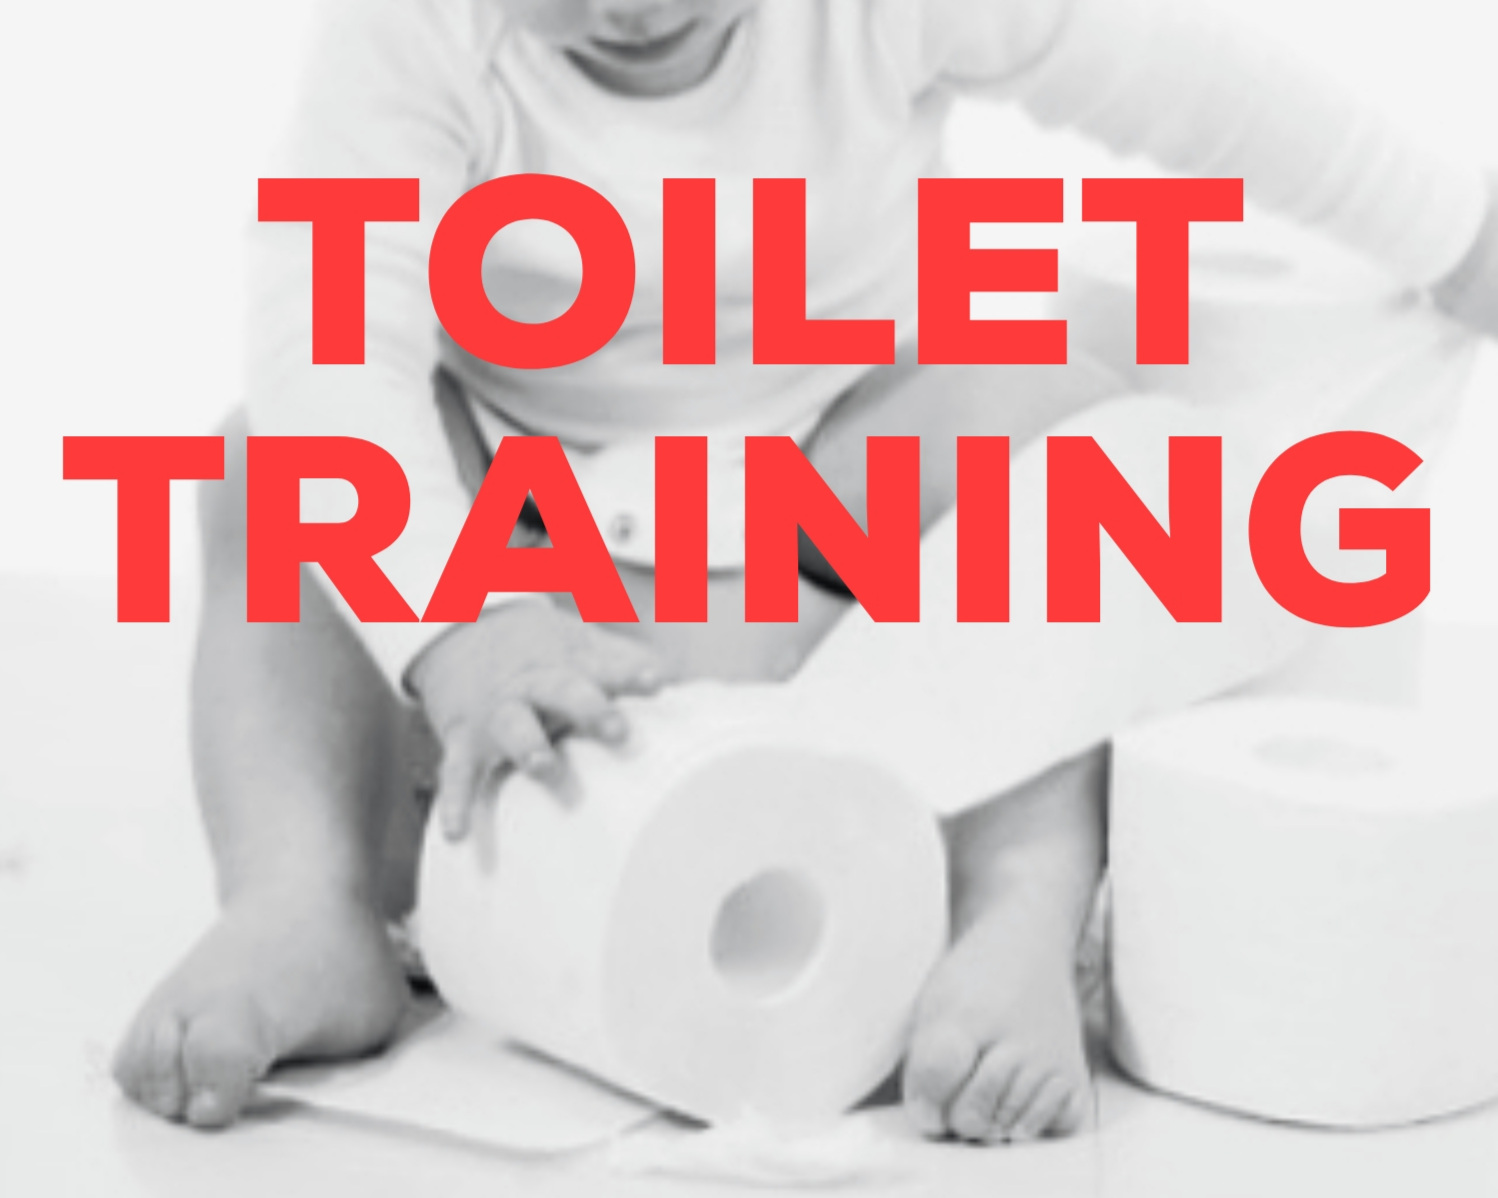 toilet training.jpg